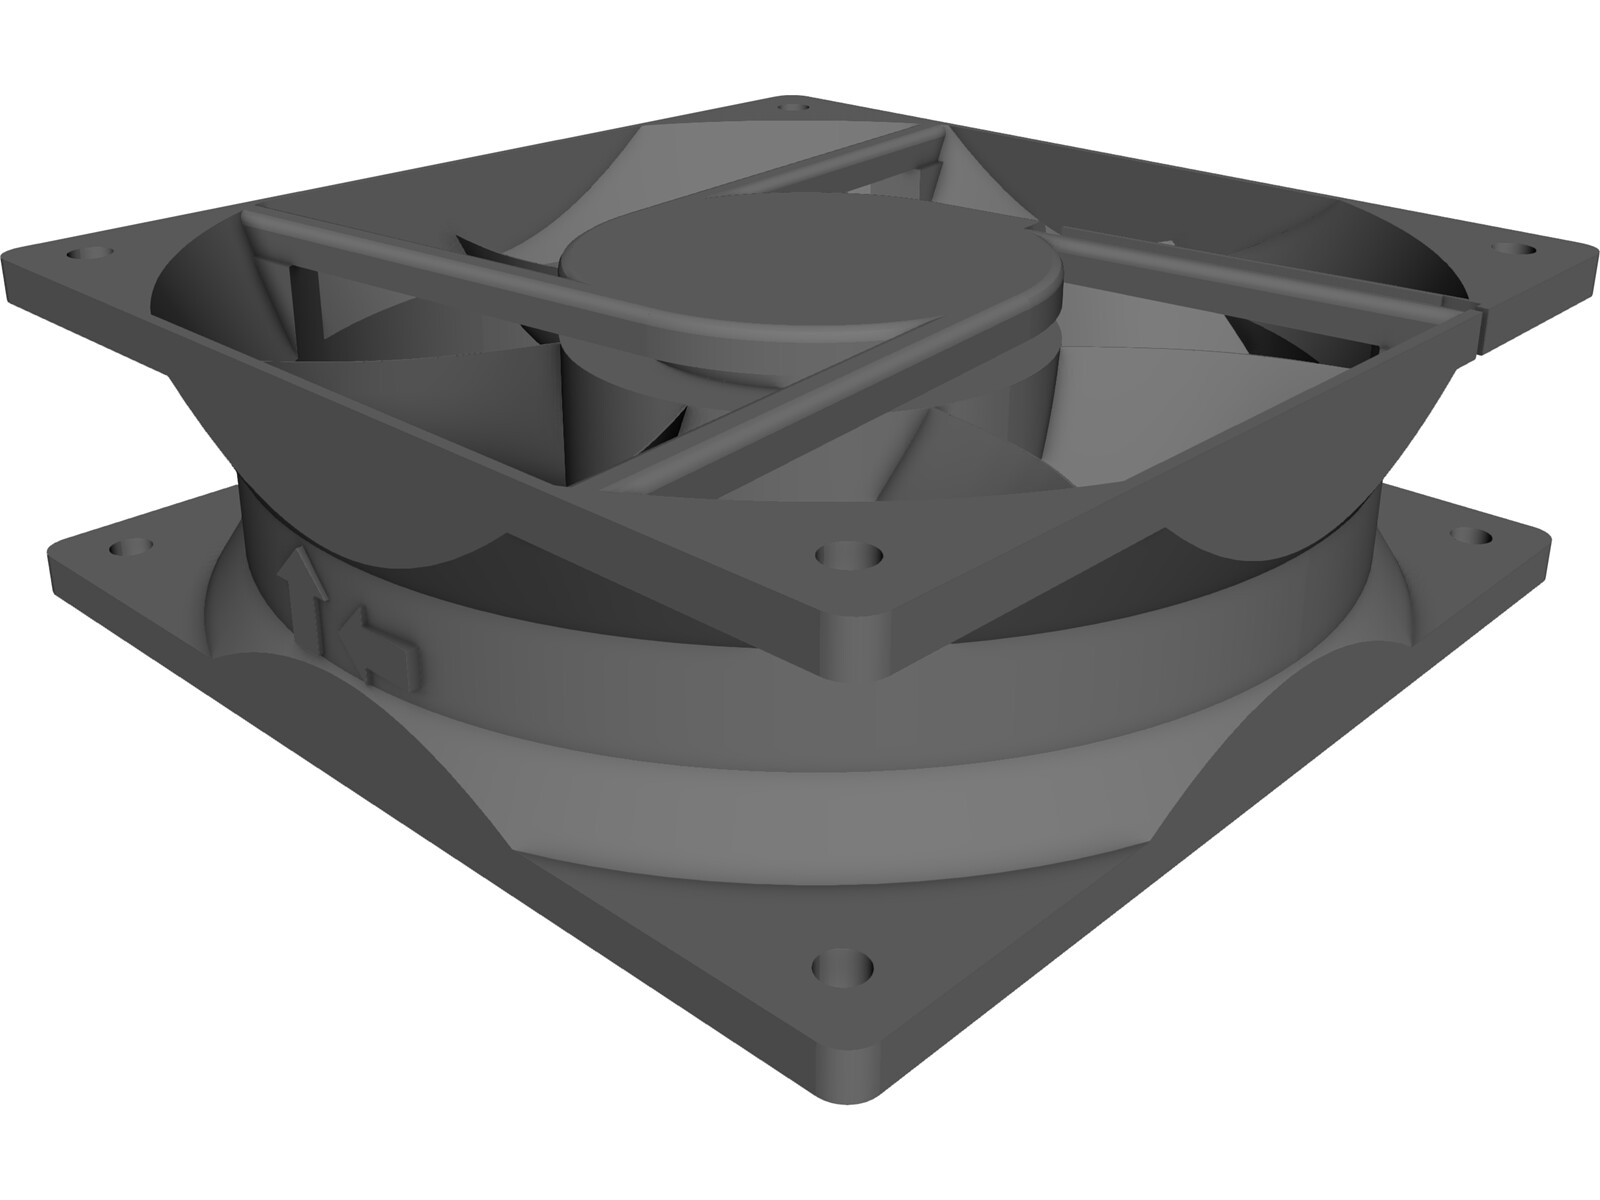 Cooling Fan 3D CAD Model